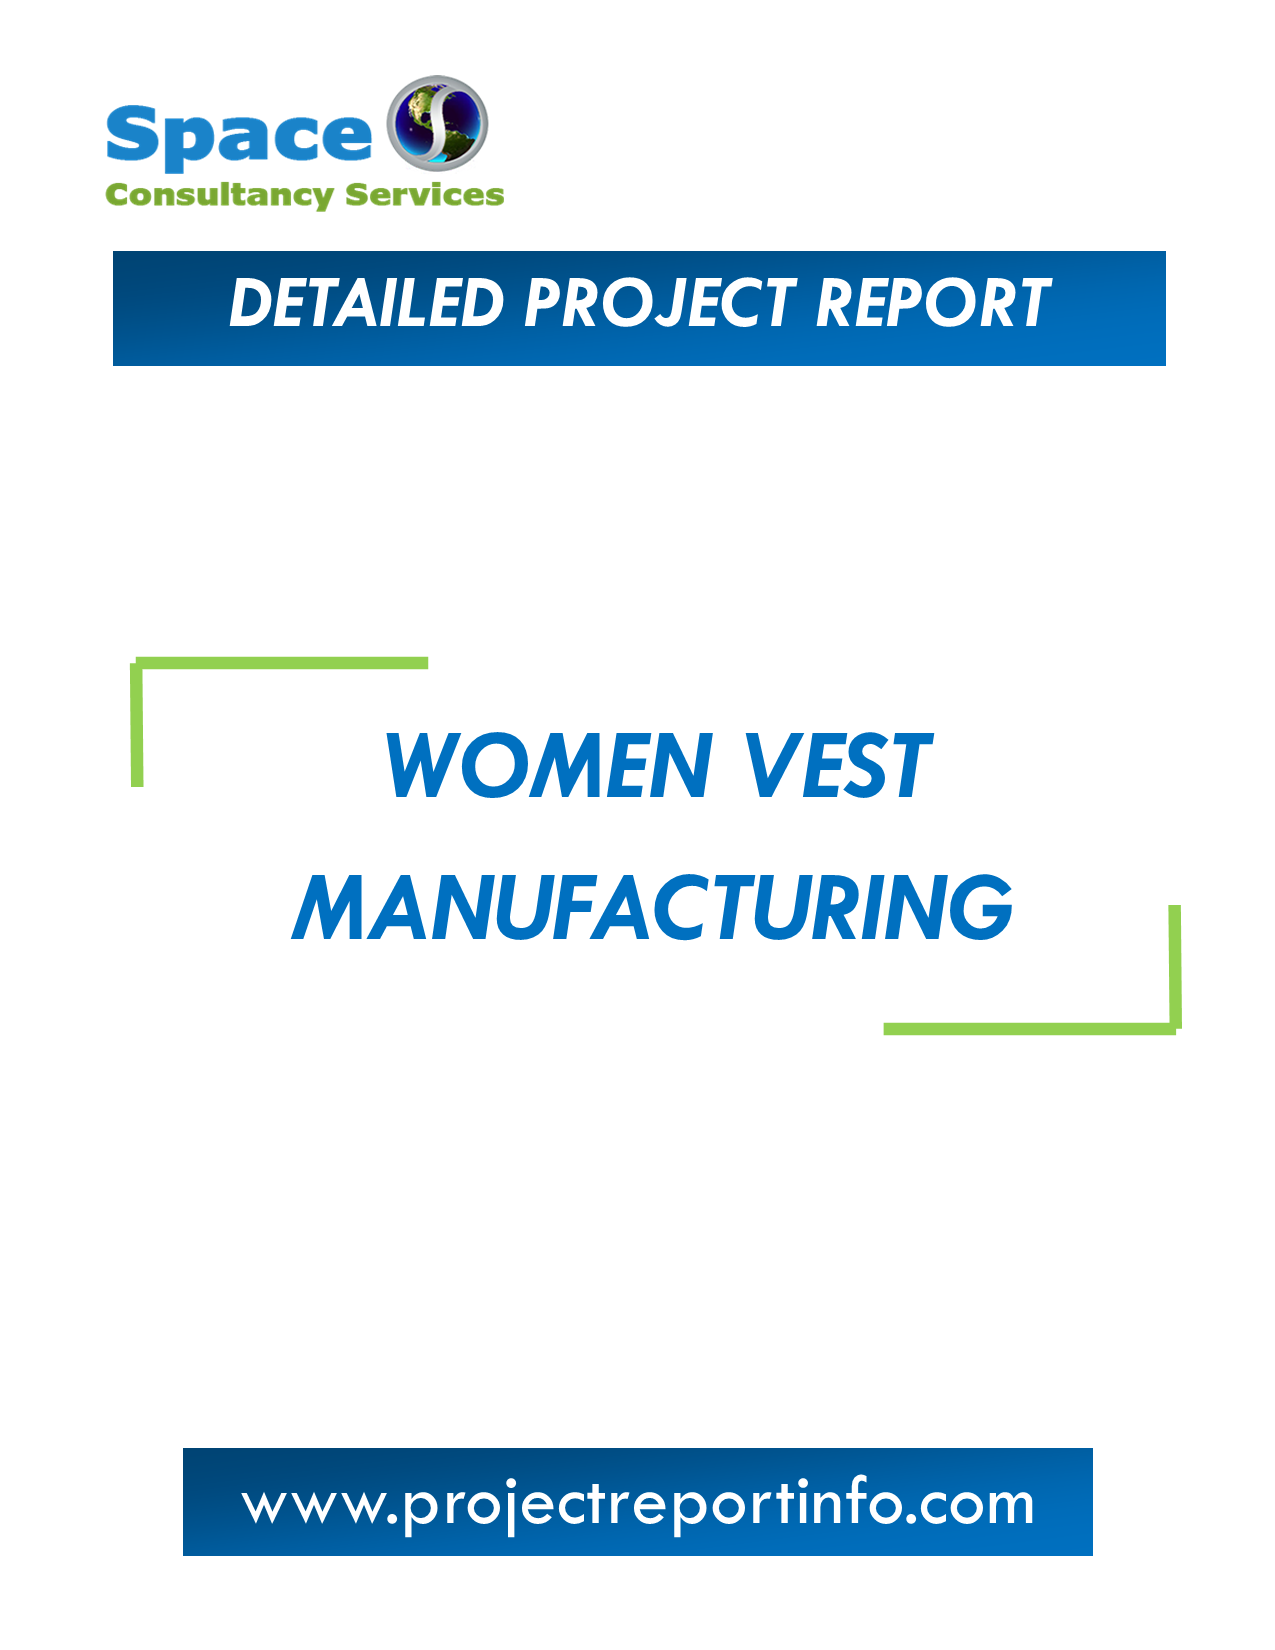 Project Report on Women Vest Manufacturing